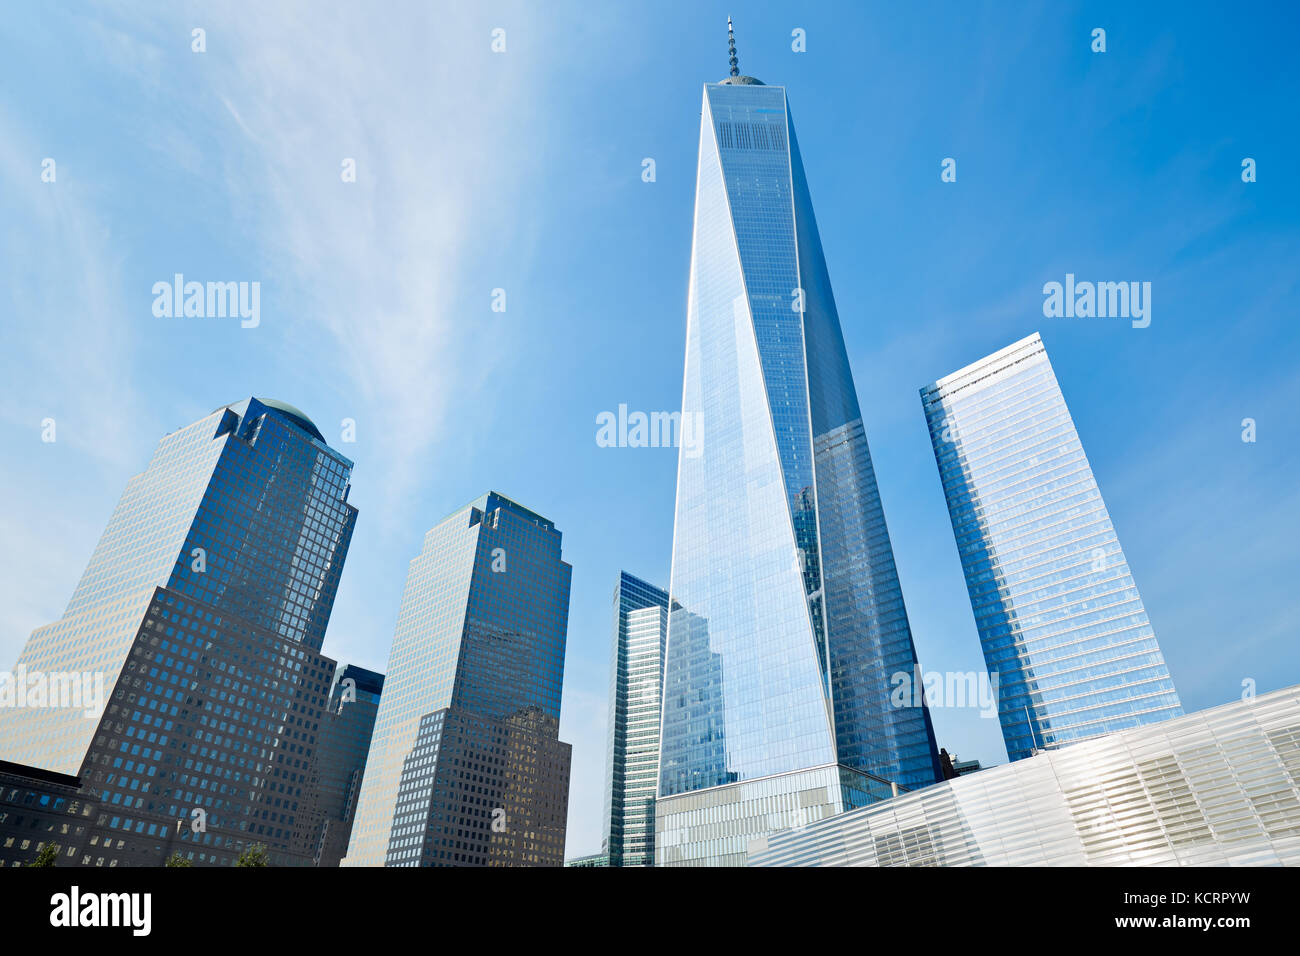 One World Trade Center skyscraper surrounded by glass buildings, blue sky in a sunny day in New York - Stock Image